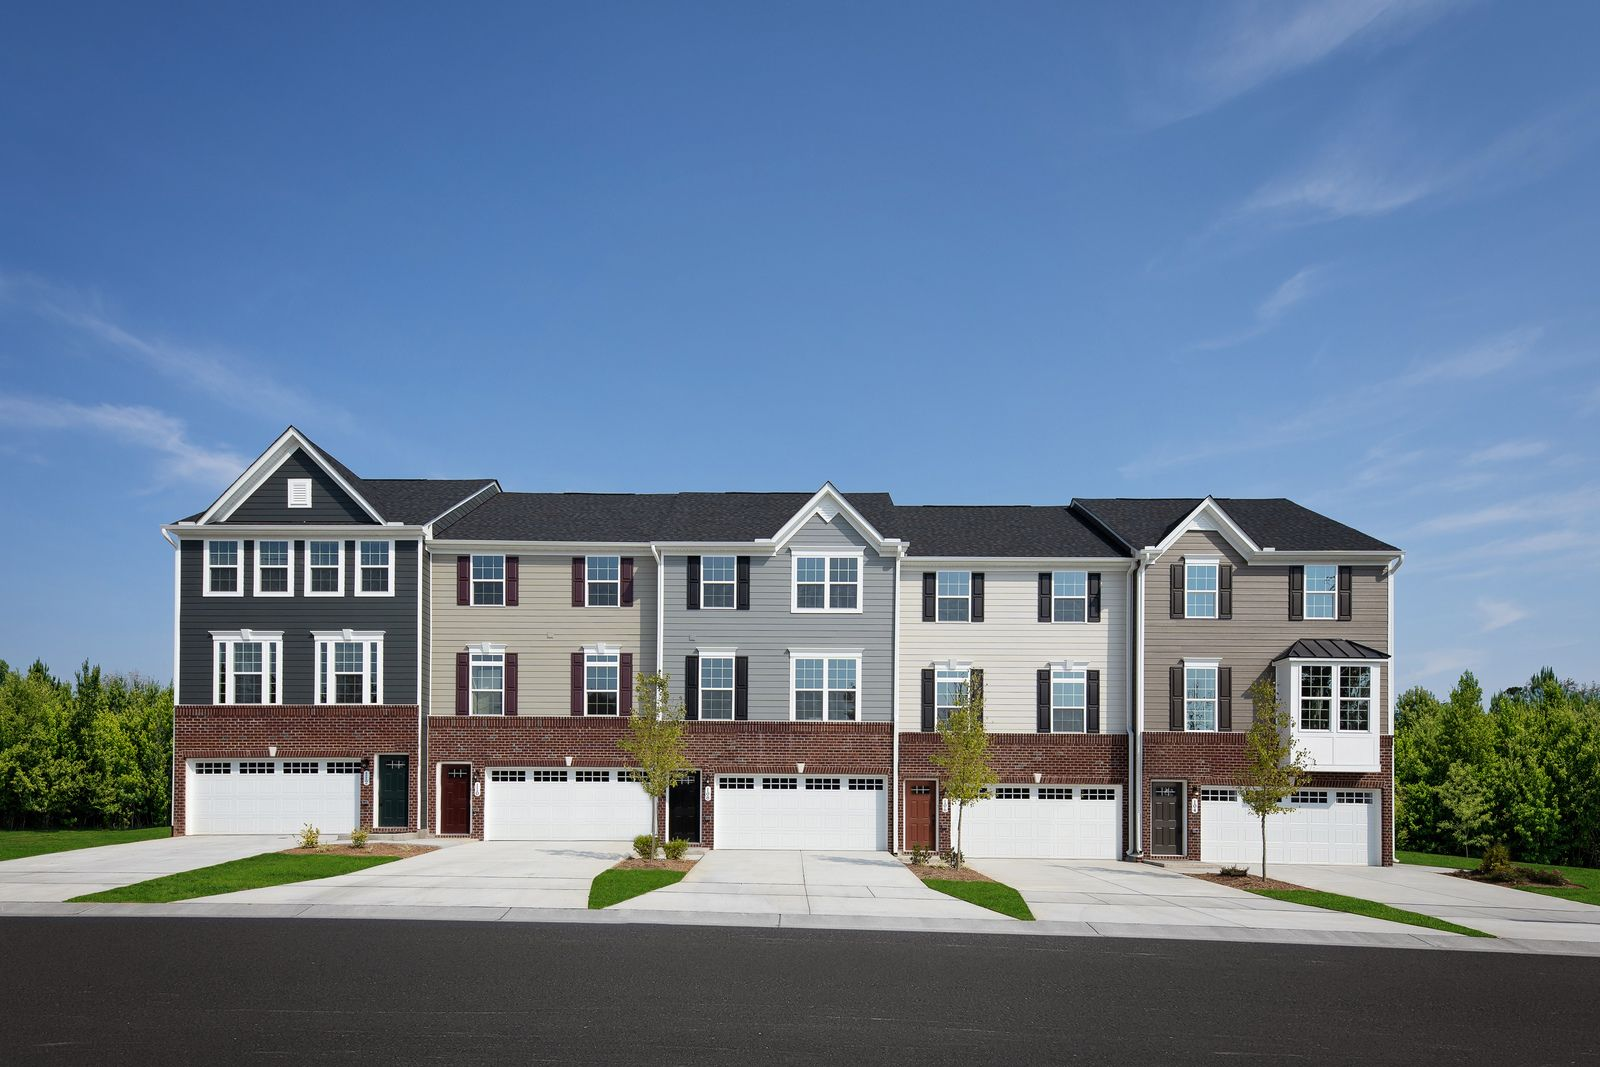 Excellent Value Near RTP - Brand New Townhomes at Creekside Commons:Looking for an affordable home in a convenient location?Schedule a visit at Creekside Commons!